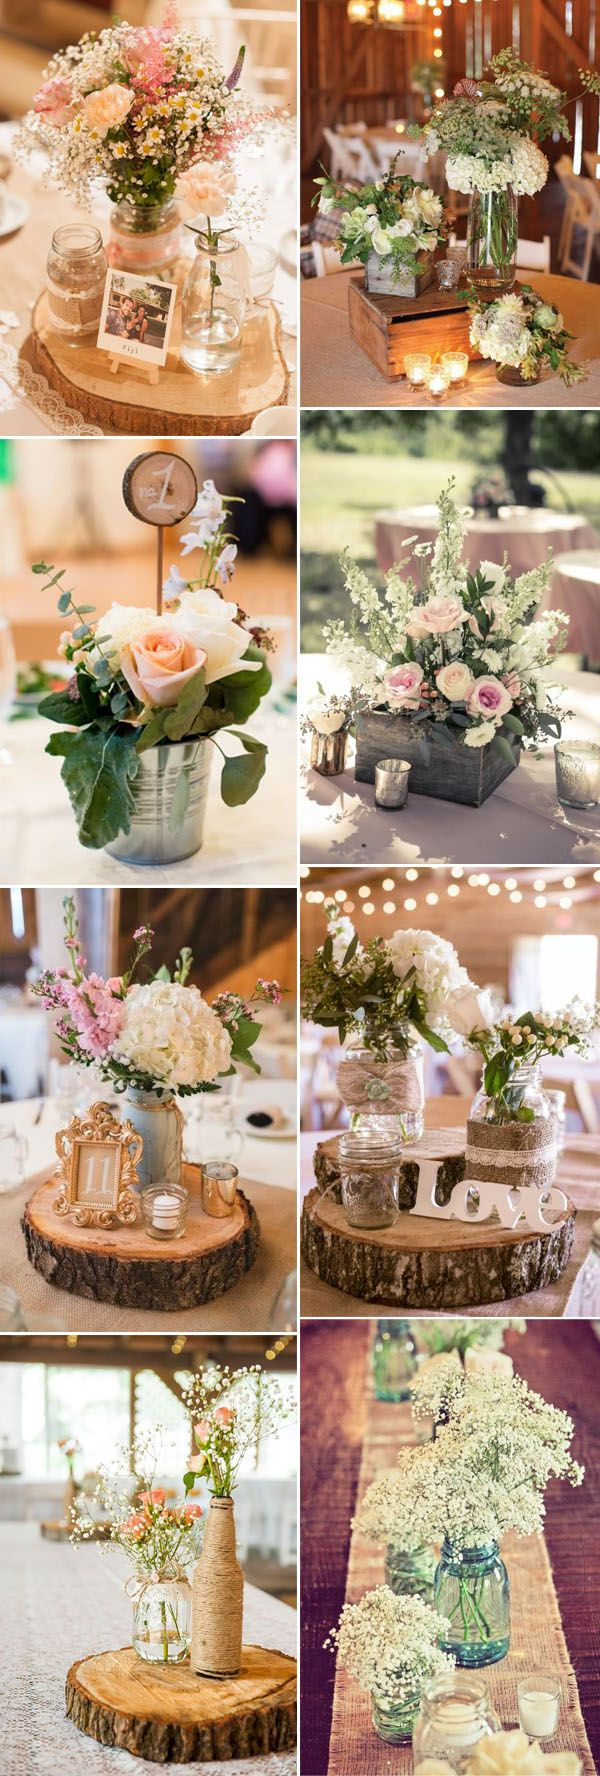 Let them eat cake rustic wedding chic - 32 Stunning Wedding Centerpieces Ideas